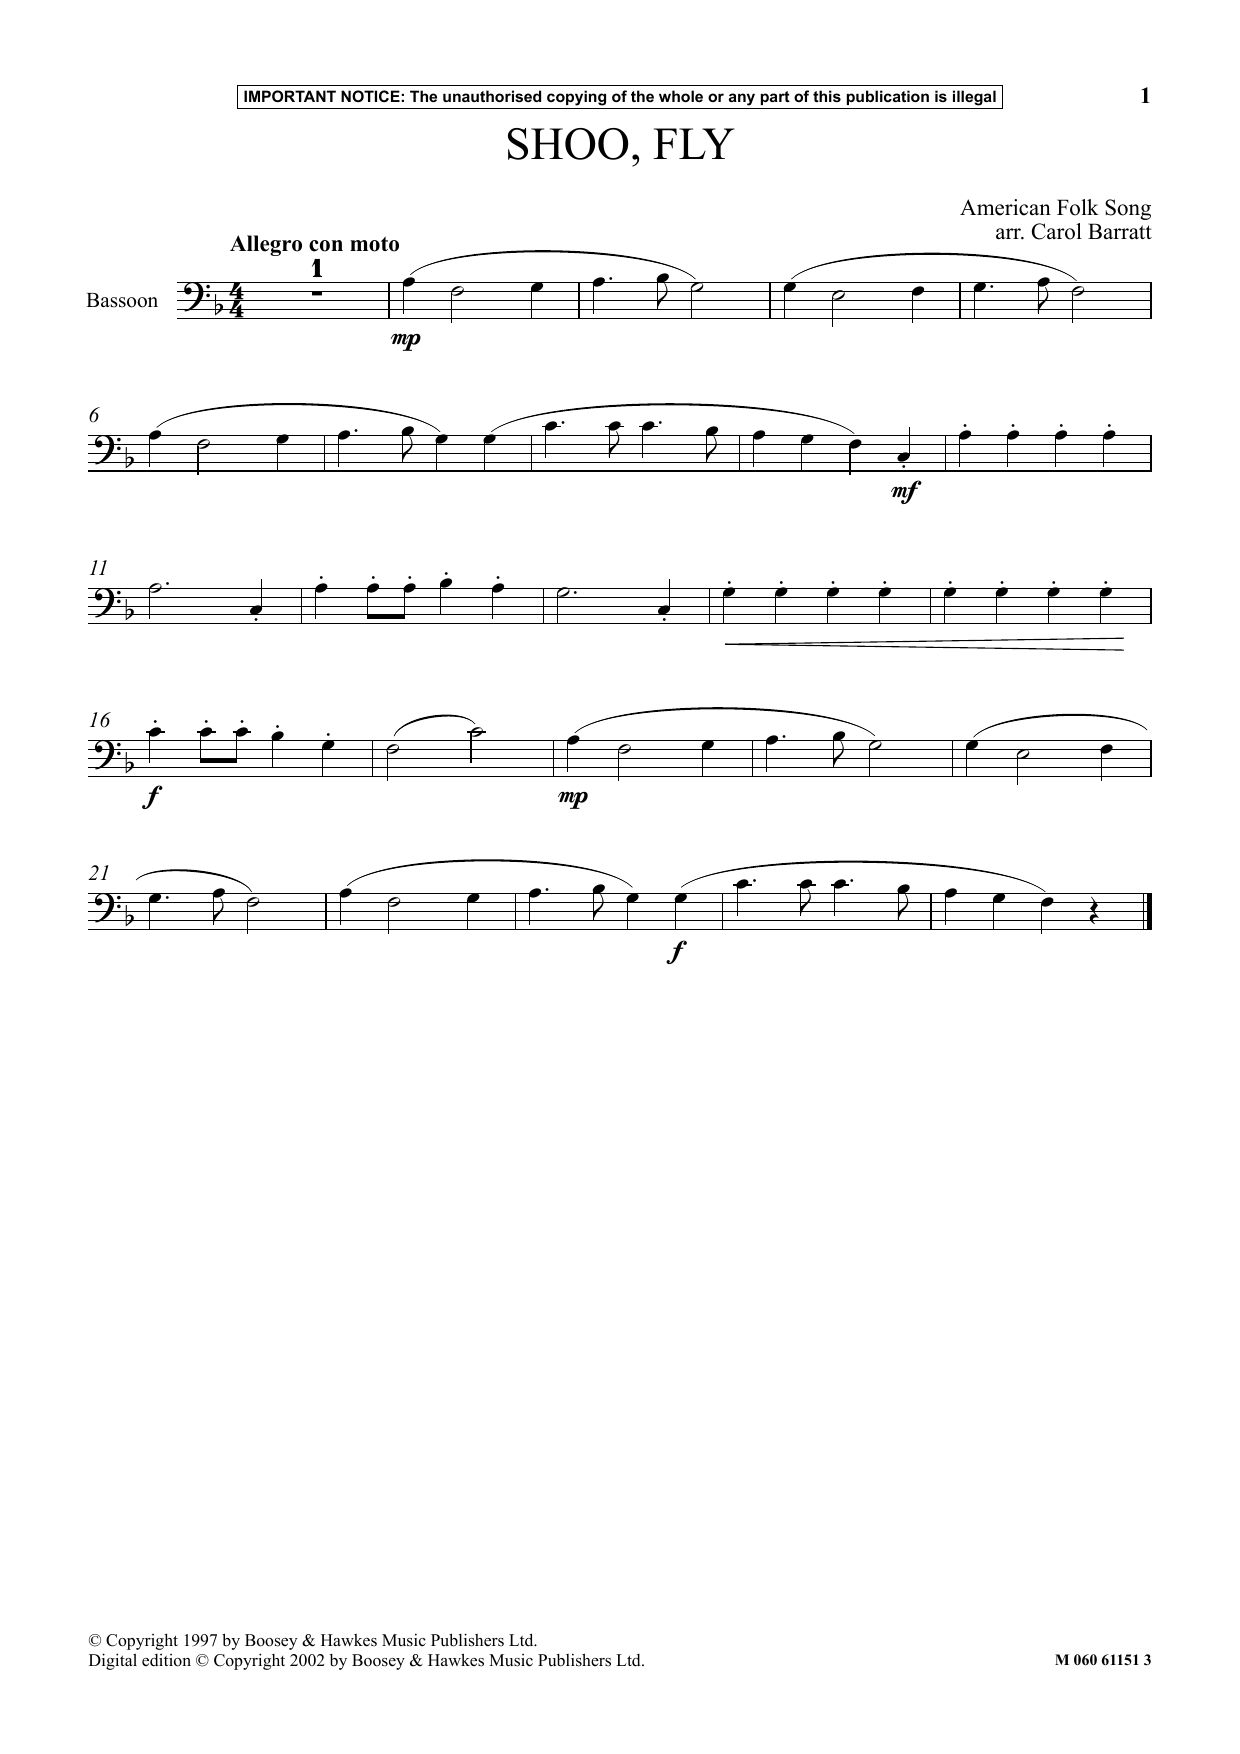 Download American Folk Song 'Shoo Fly' Digital Sheet Music Notes & Chords and start playing in minutes